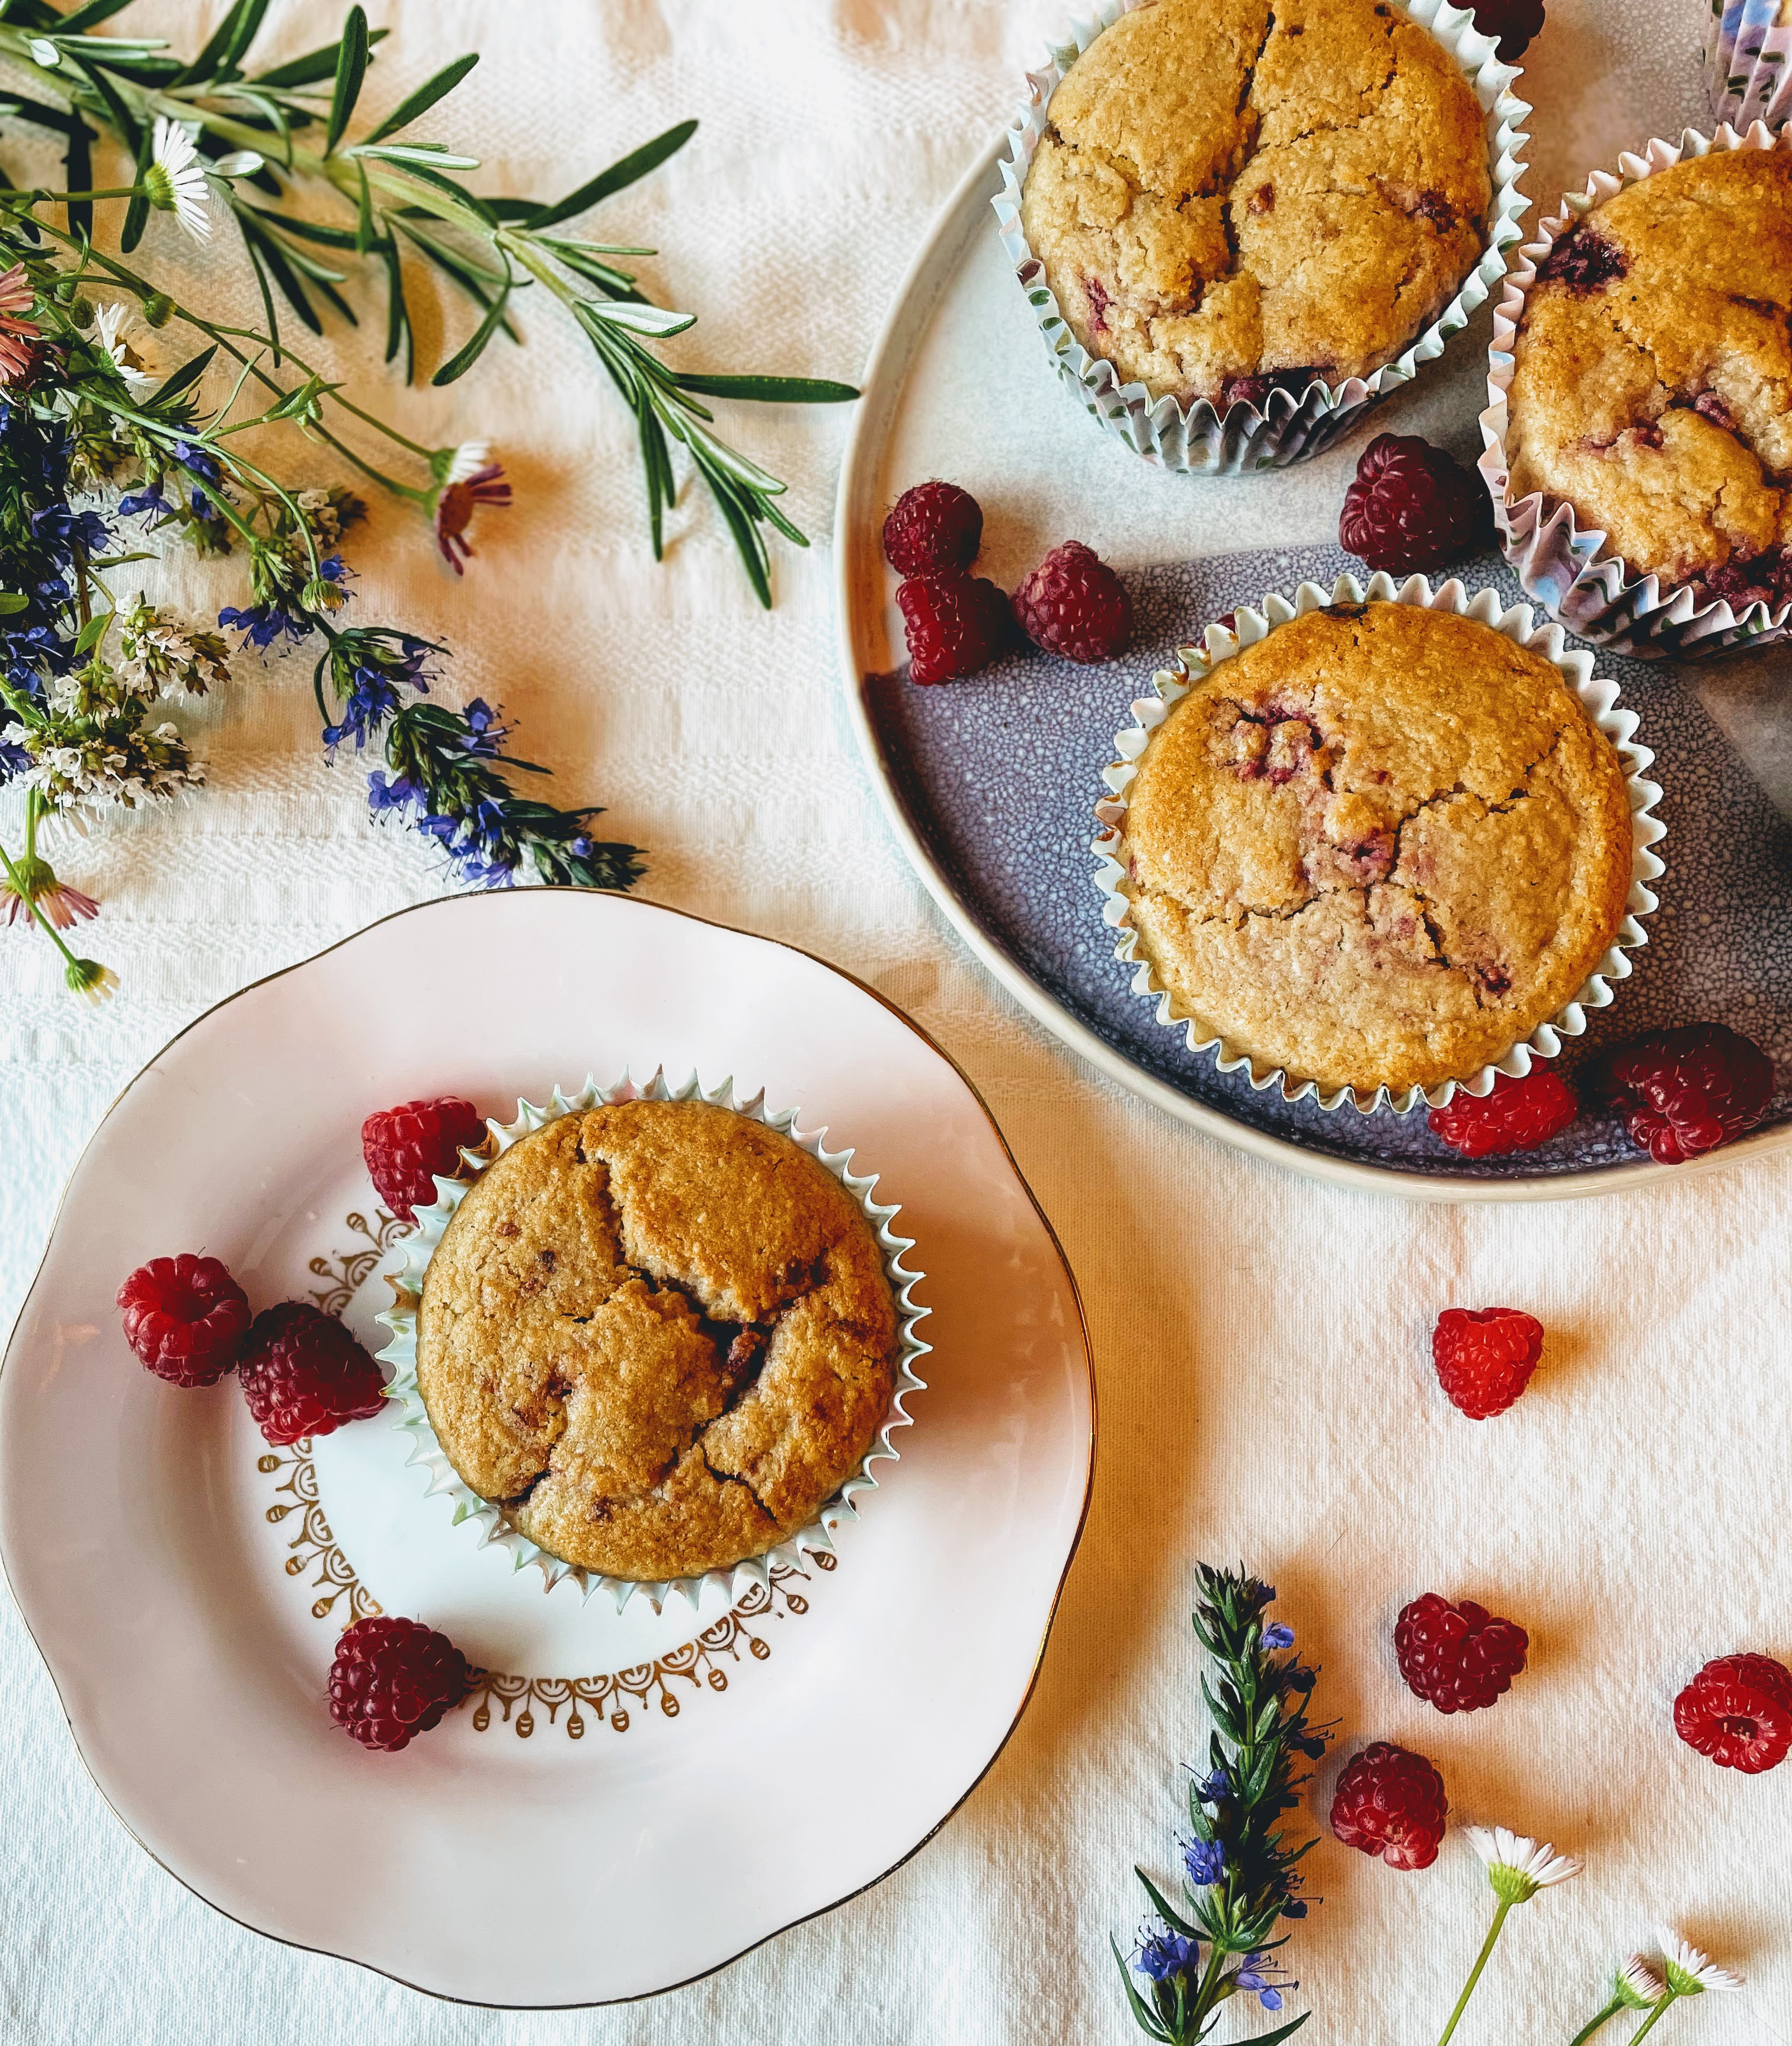 A birds-eye view of the lemon and raspberry muffins. One is on a pale pink side plate with a few fresh raspberries scattered next to it, and there are some more muffins on a blue platter at the top right of the picture. All of the muffins are golden brown, with flecks of raspberry peeking through. There are wild flowers, herbs and raspberries scattered on the table cloth next to the plates.